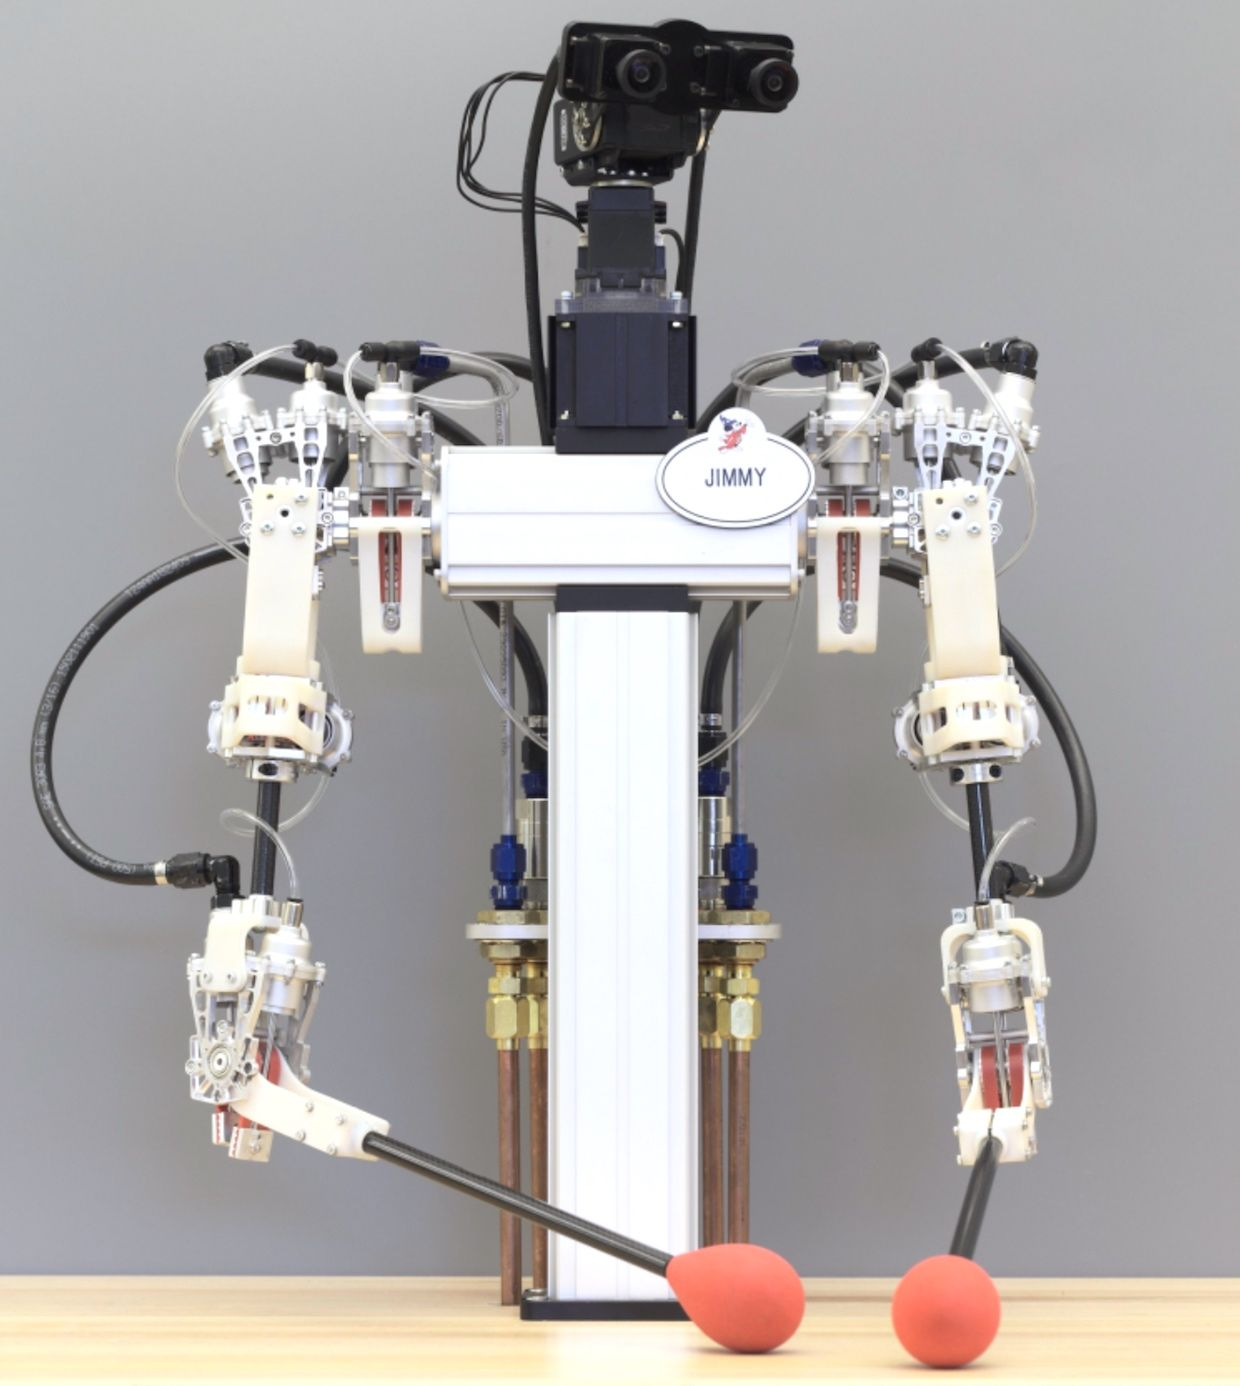 Disney Research's Jimmy, a robot powered by fluid air-water actuators